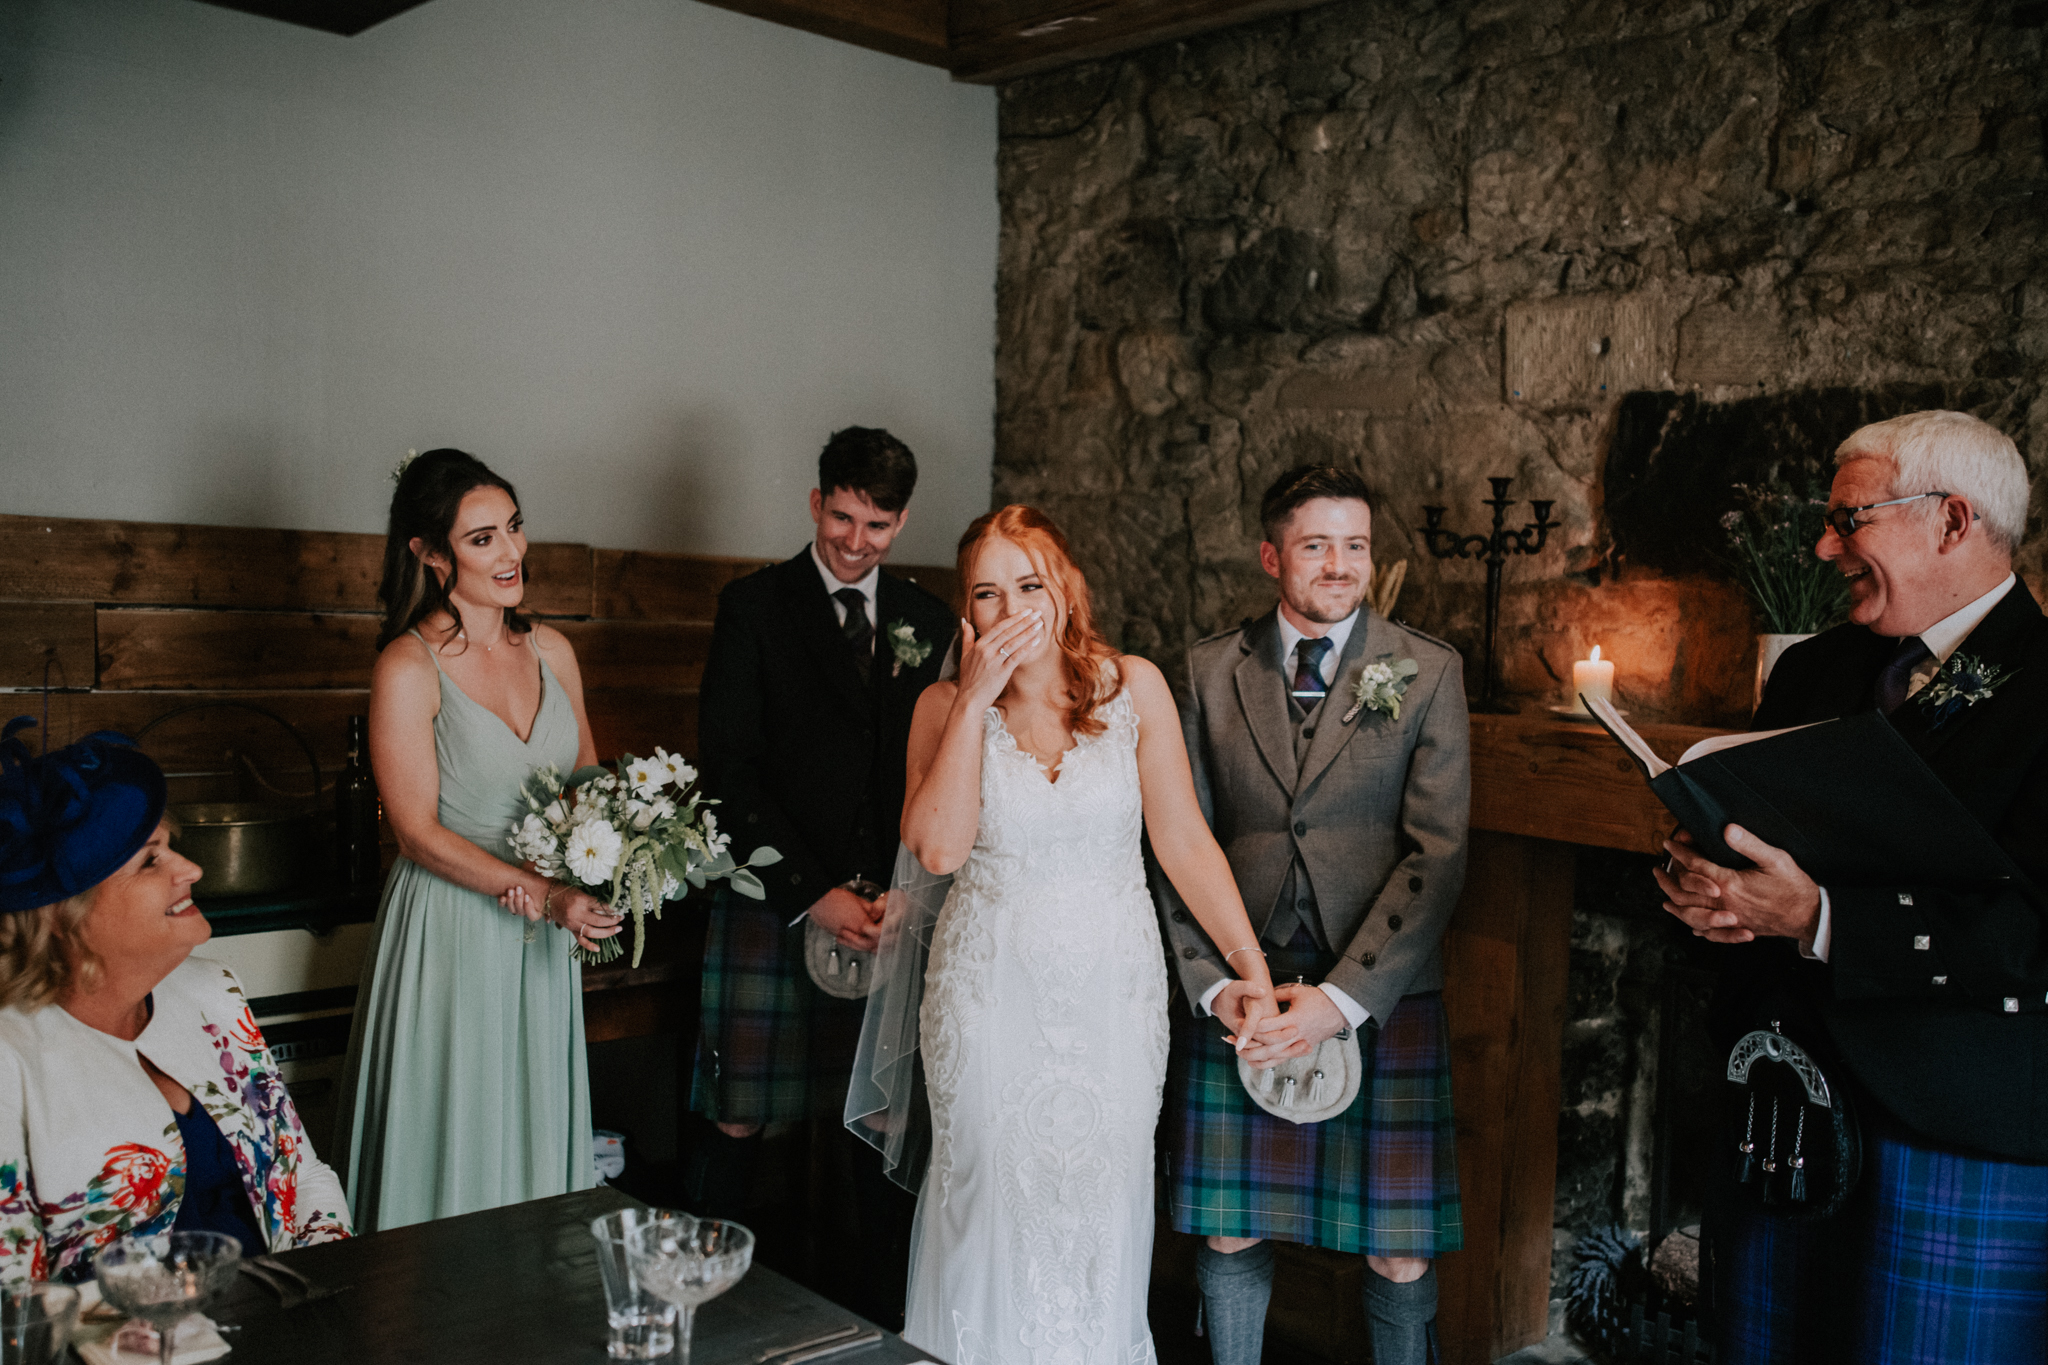 The bride is laughing during the wedding ceremony at the Bothy